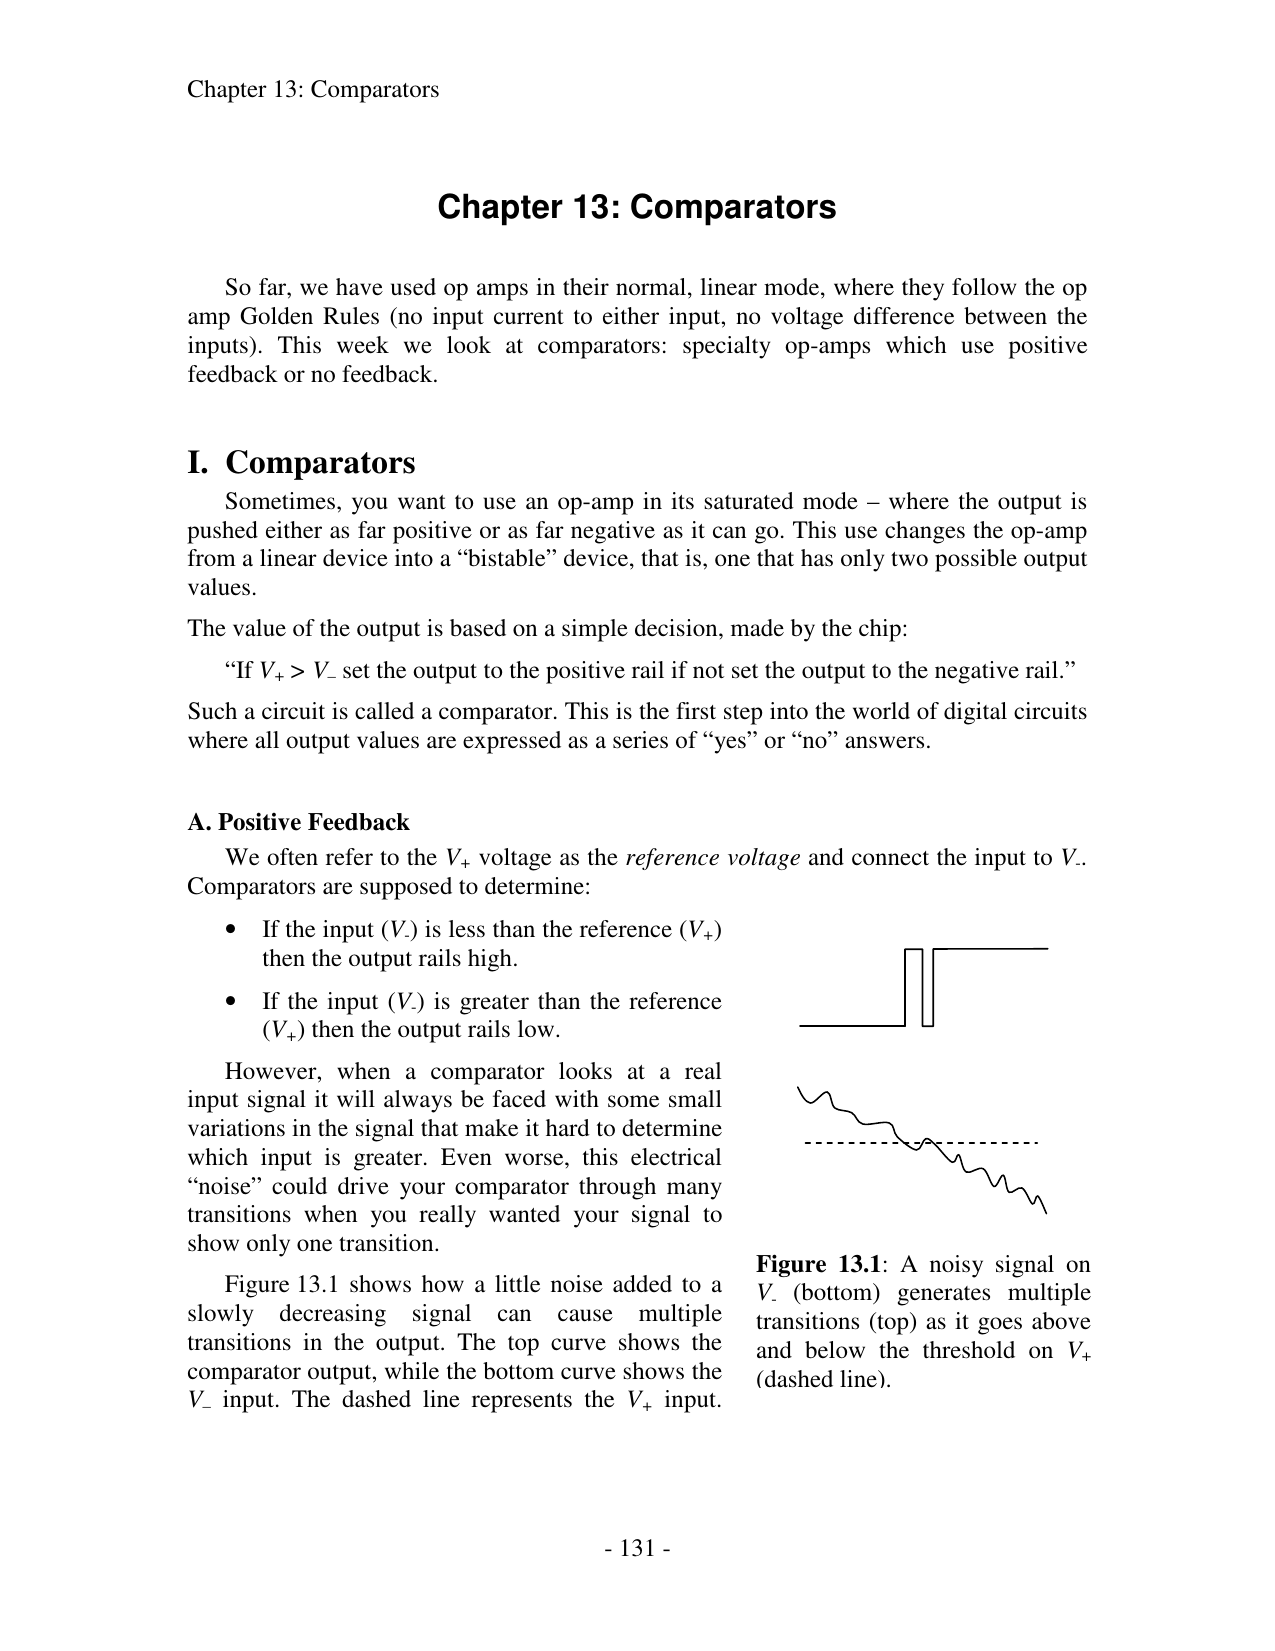 Chapter 13 Comparators I Comparator Oscillator Circuit By Lm311